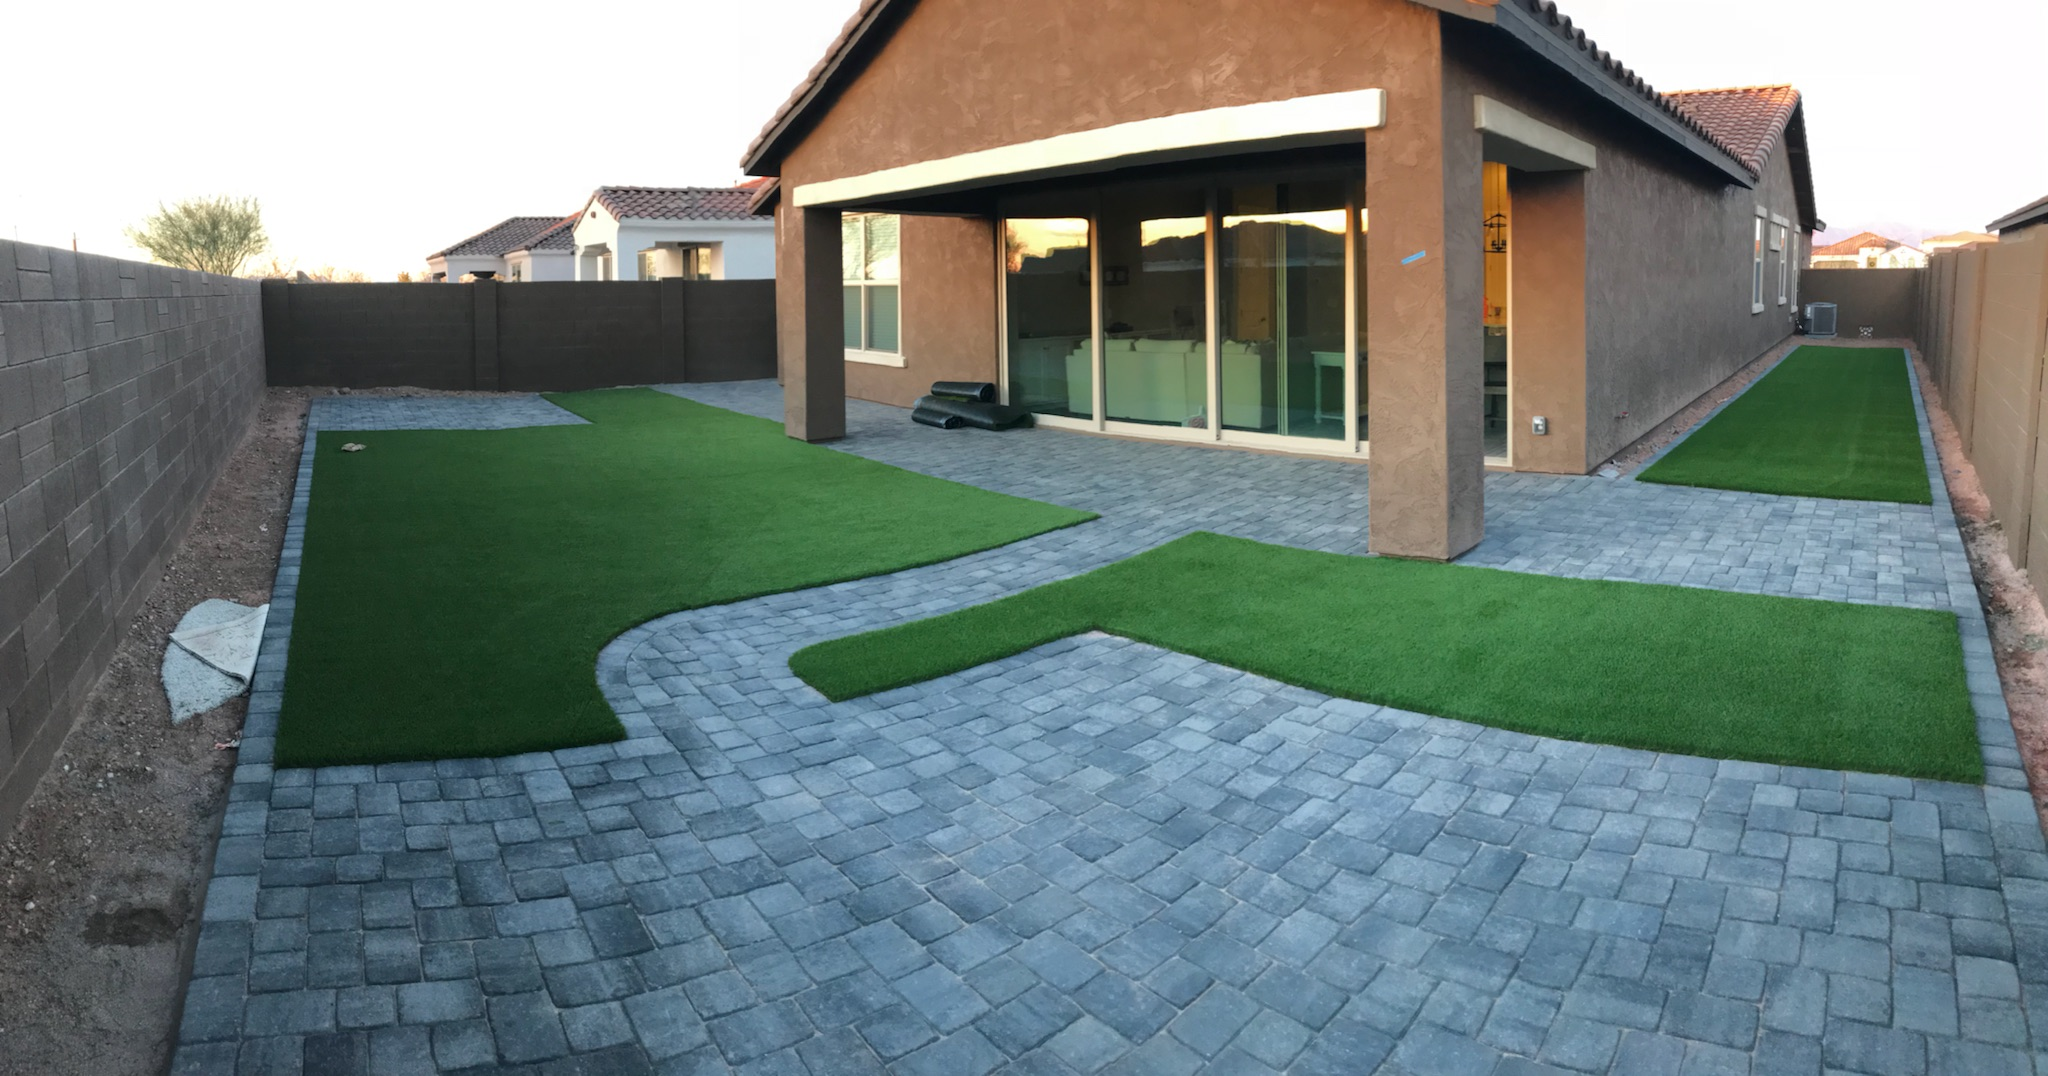 Paver Stone & Artificial Turf Installed in Phoenix Arizona